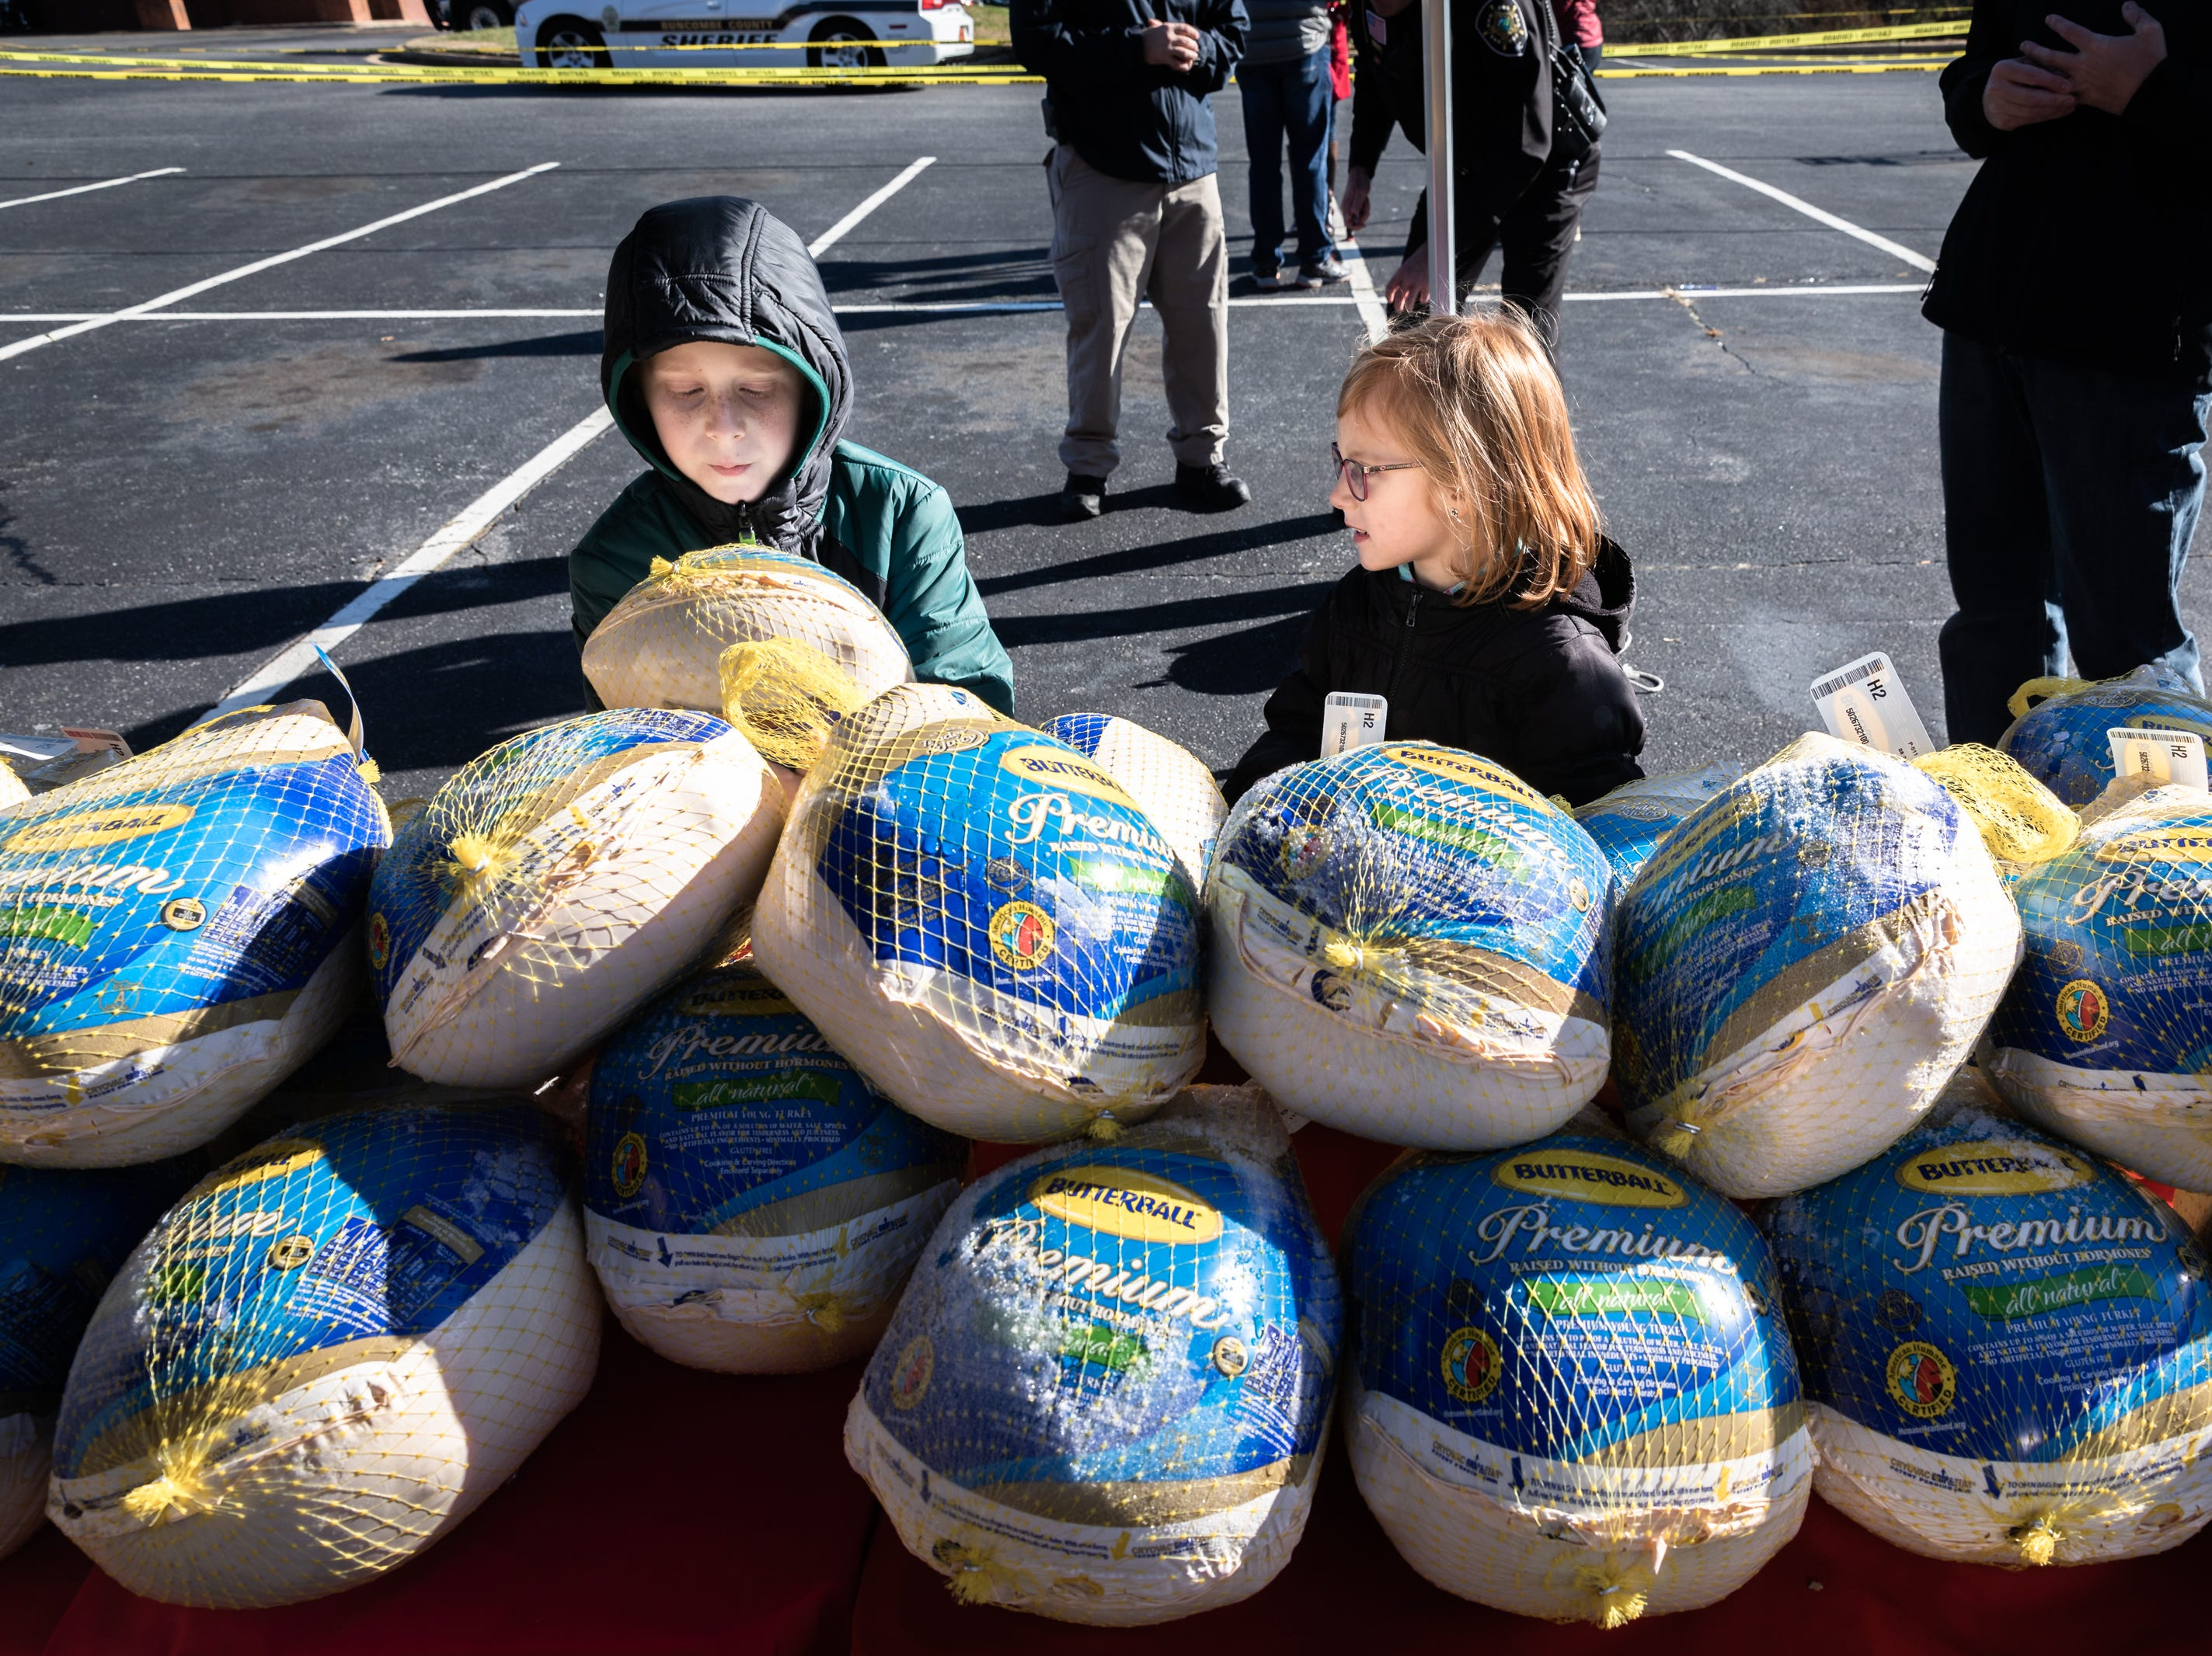 Caleb Gordon, 9 and his sister Hannah Gordon, 7, of Akron Ohio, pick out turkeys to hand to Eblen Charities clients as they volunteer with their family at Ingles in the South Forest Shopping Center, during the annual turkey giveaway Nov. 21, 2018. More than 13,000 meals were provided to nearly 1,300 families this year.